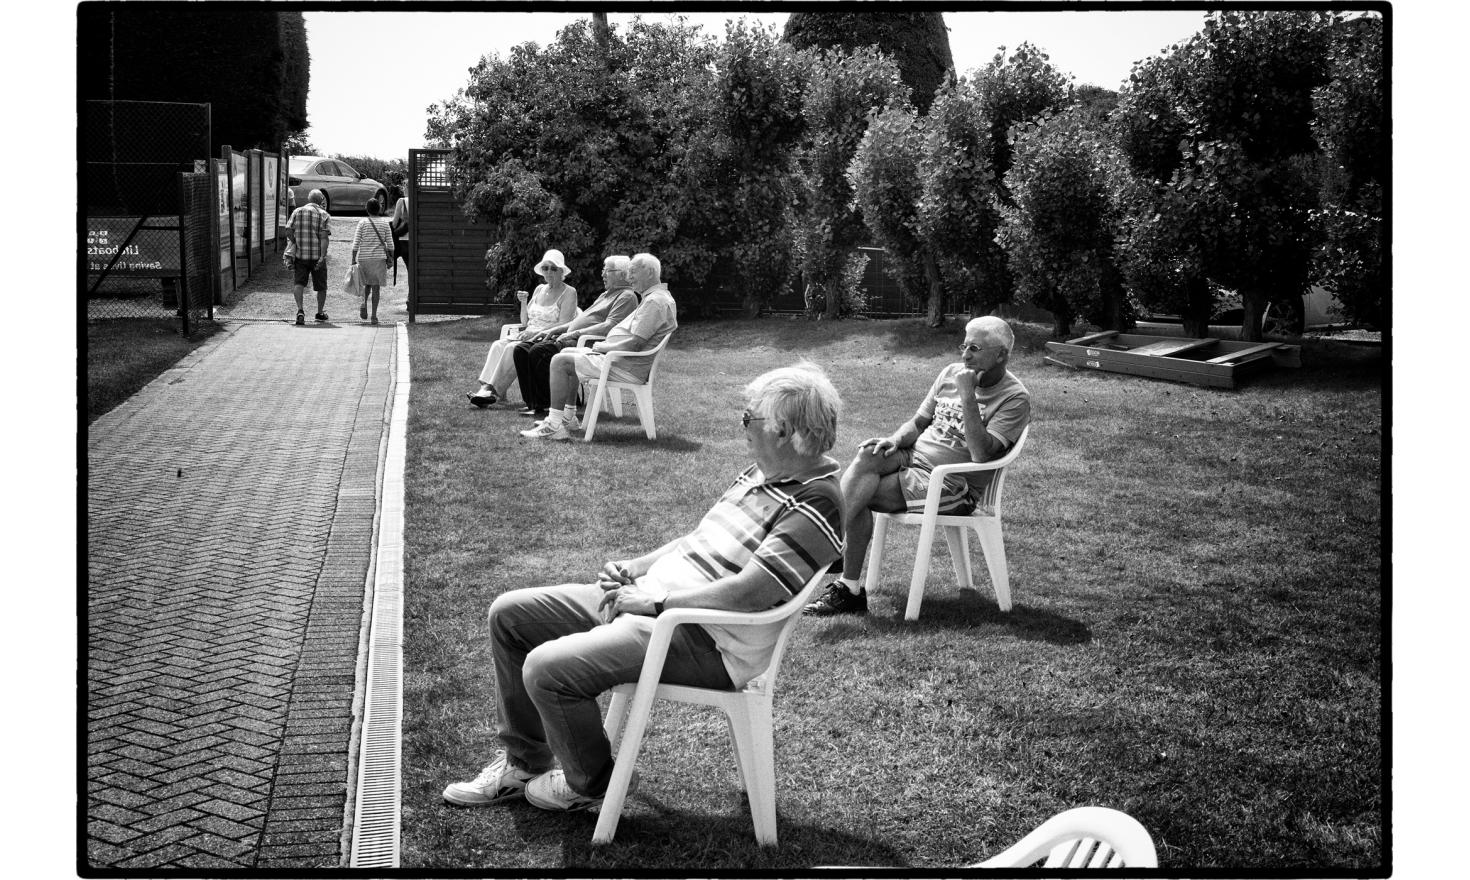 """Spectators at the senoir final, tennis tounament in frinton, a very fancy toxn near Clacton. The Trending district has voted at 65% for the""""leave""""the EU. Frinton, England. July 2016"""